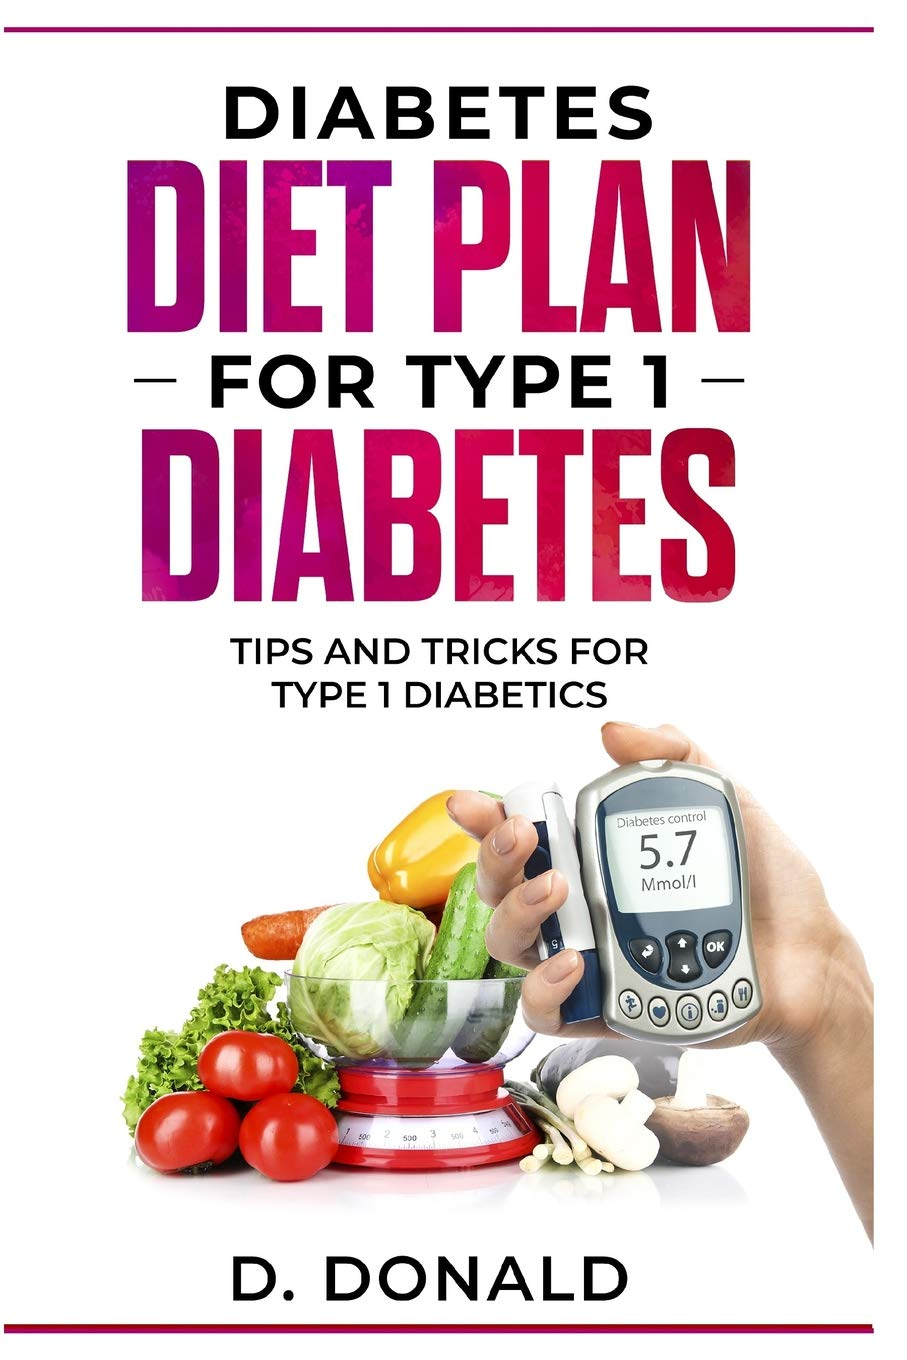 tips for diabetic diet plan